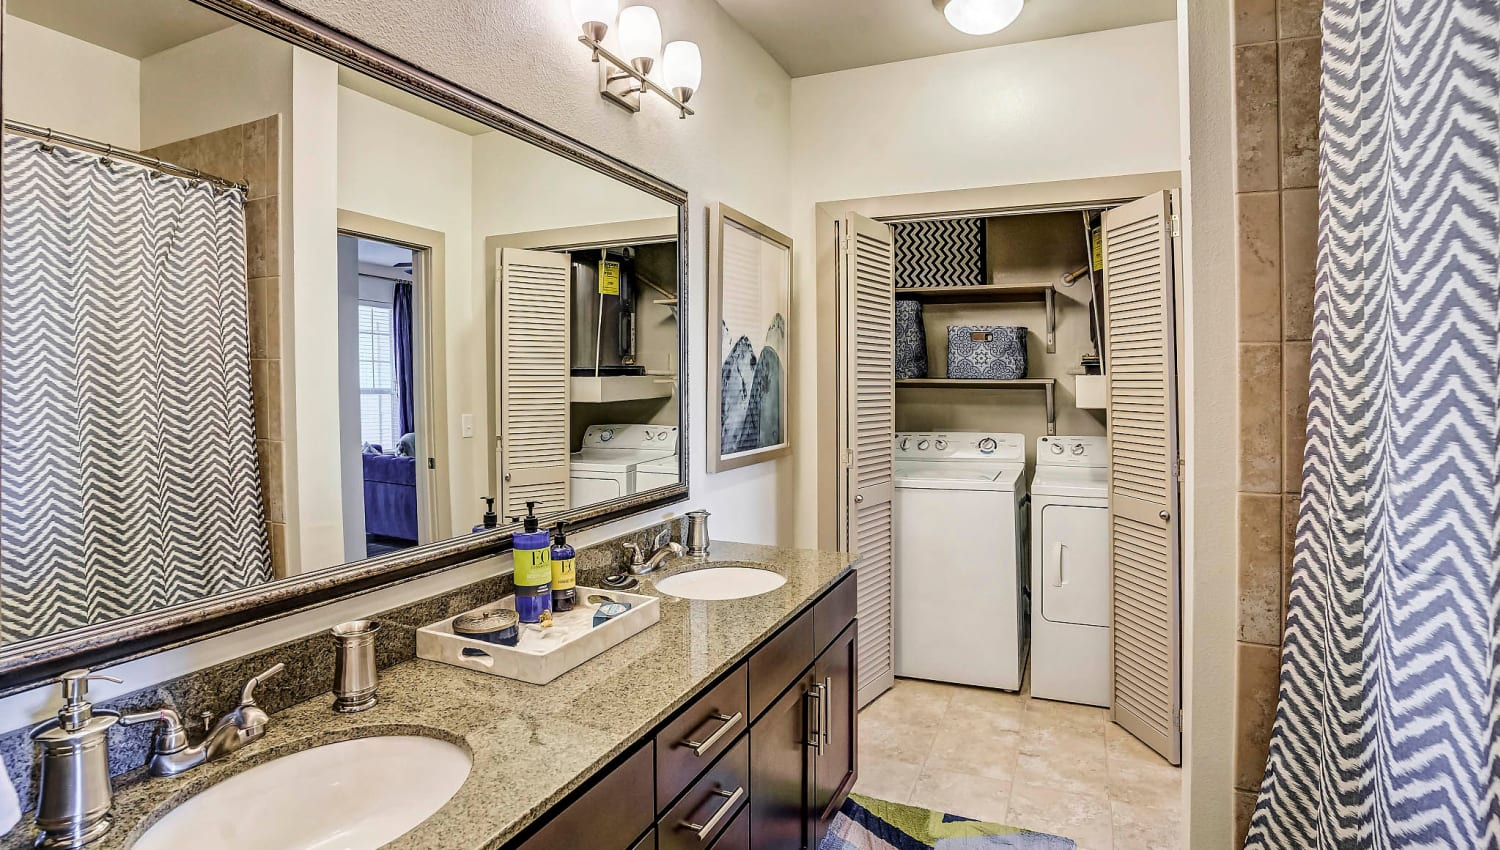 Dual sinks and adjacent laundry room in a model home's bathroom at Sundance Creek in Midland, Texas